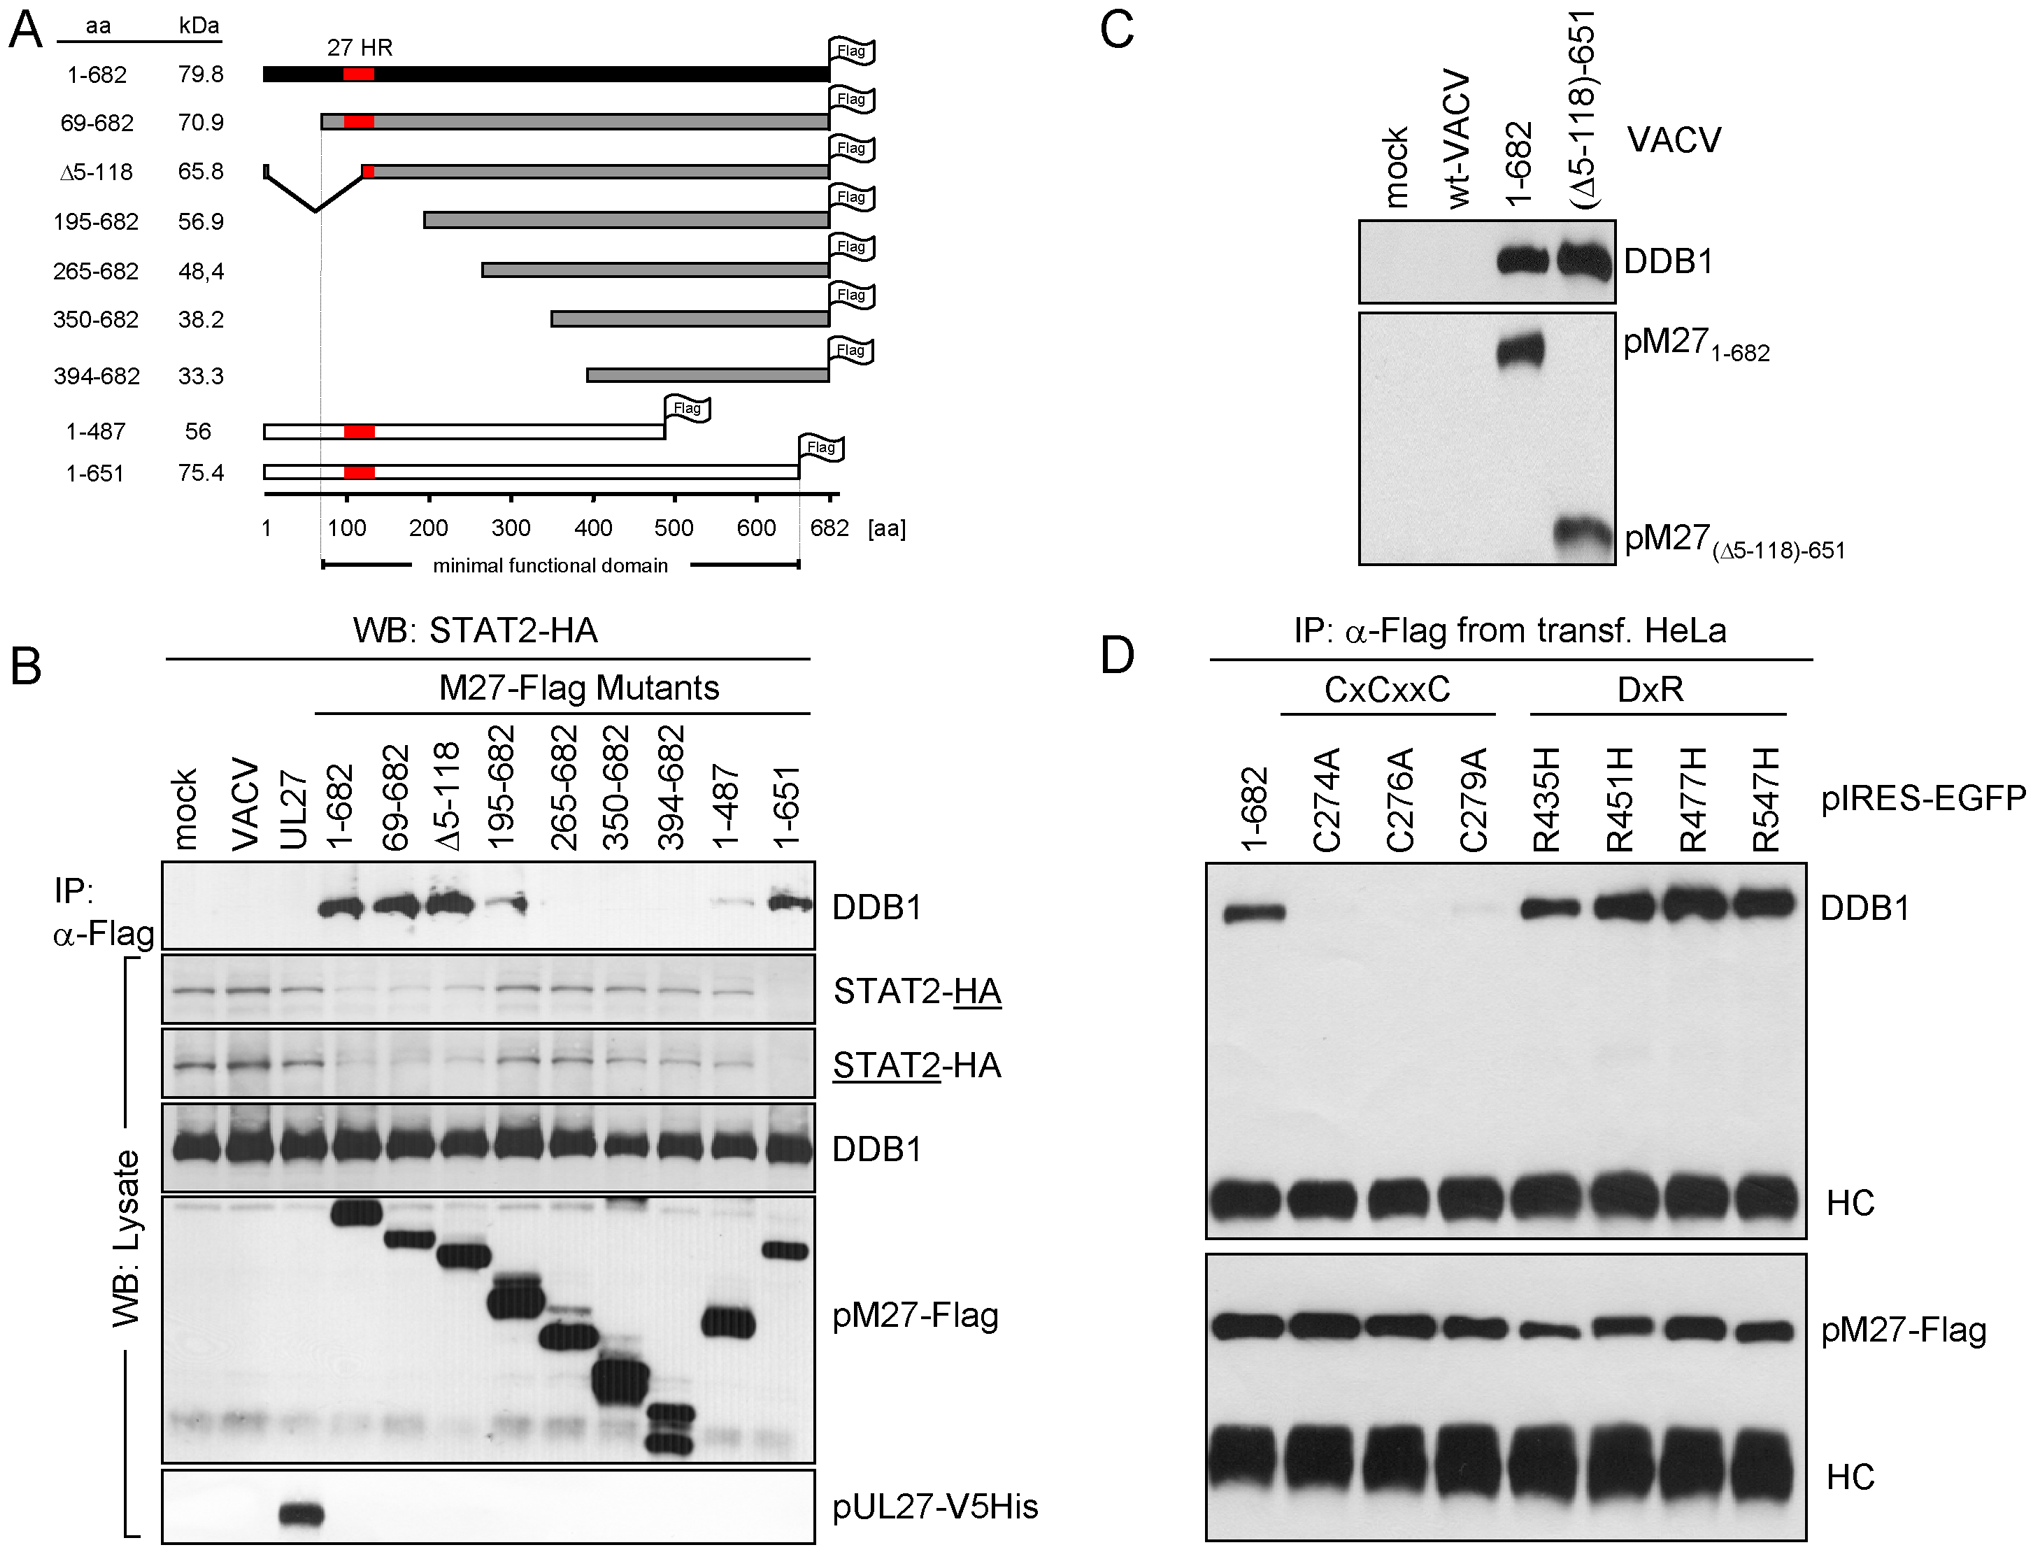 Truncation analysis of pM27-Flag indicates correlation between DDB1 binding and STAT2 degradation.